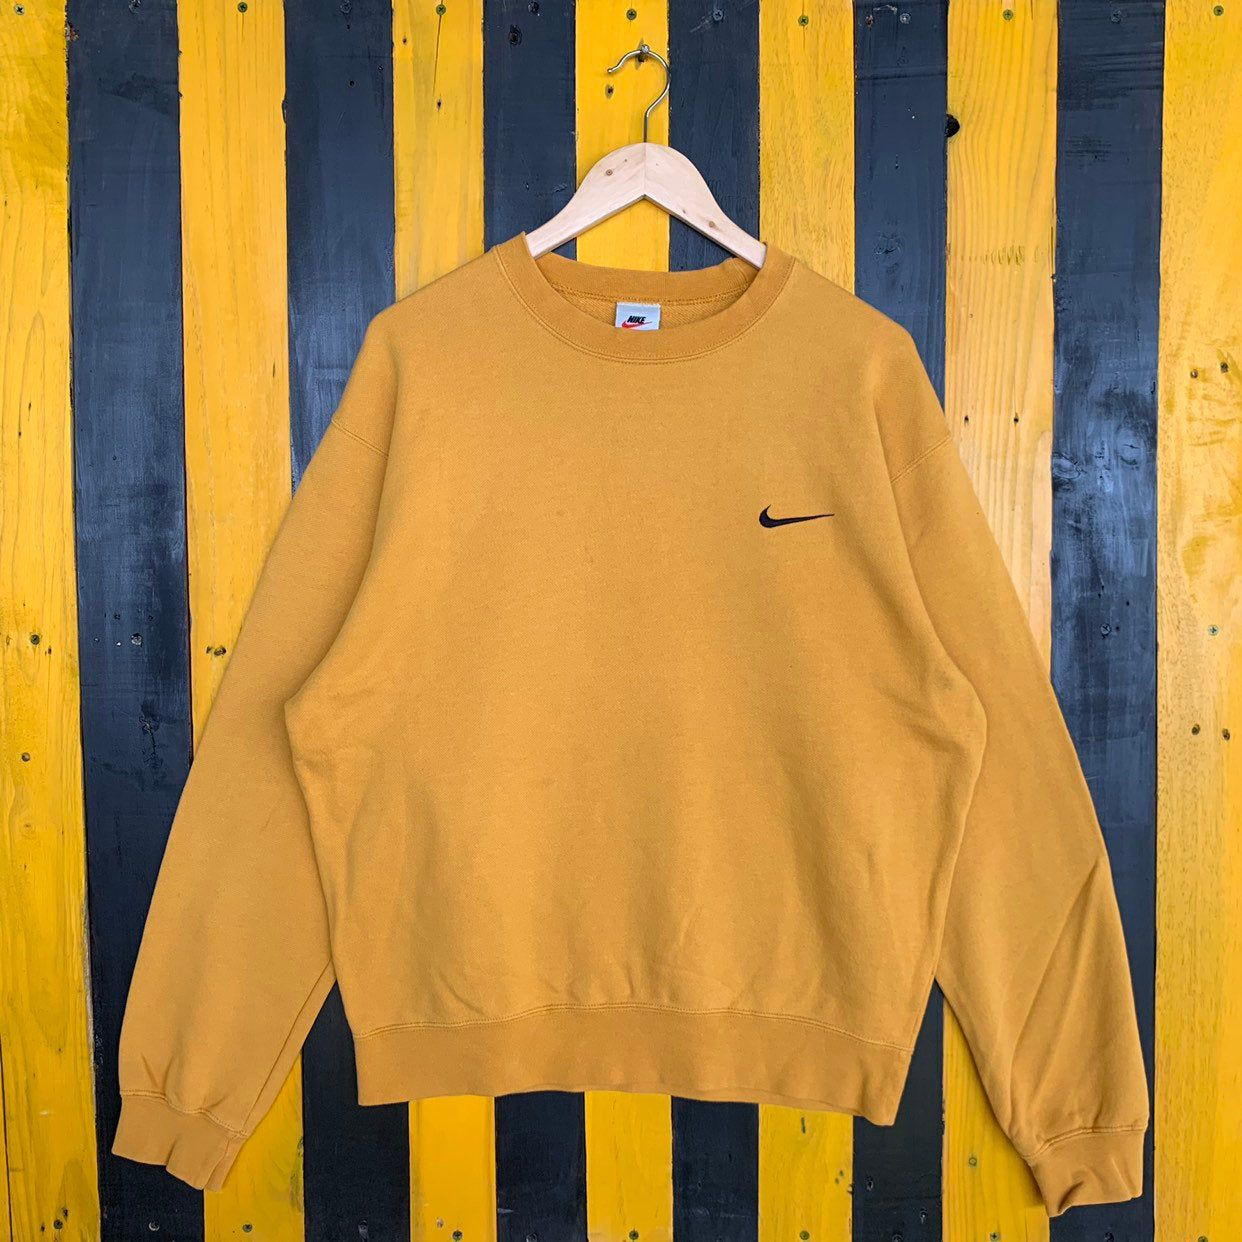 Excited To Share The Latest Addition To My Etsy Shop Vintage 90s Nike Small Swoosh Sweatshirt Jumper Pullover Yellow Colour Sweatshirts Clothes Used Clothing [ 1242 x 1242 Pixel ]